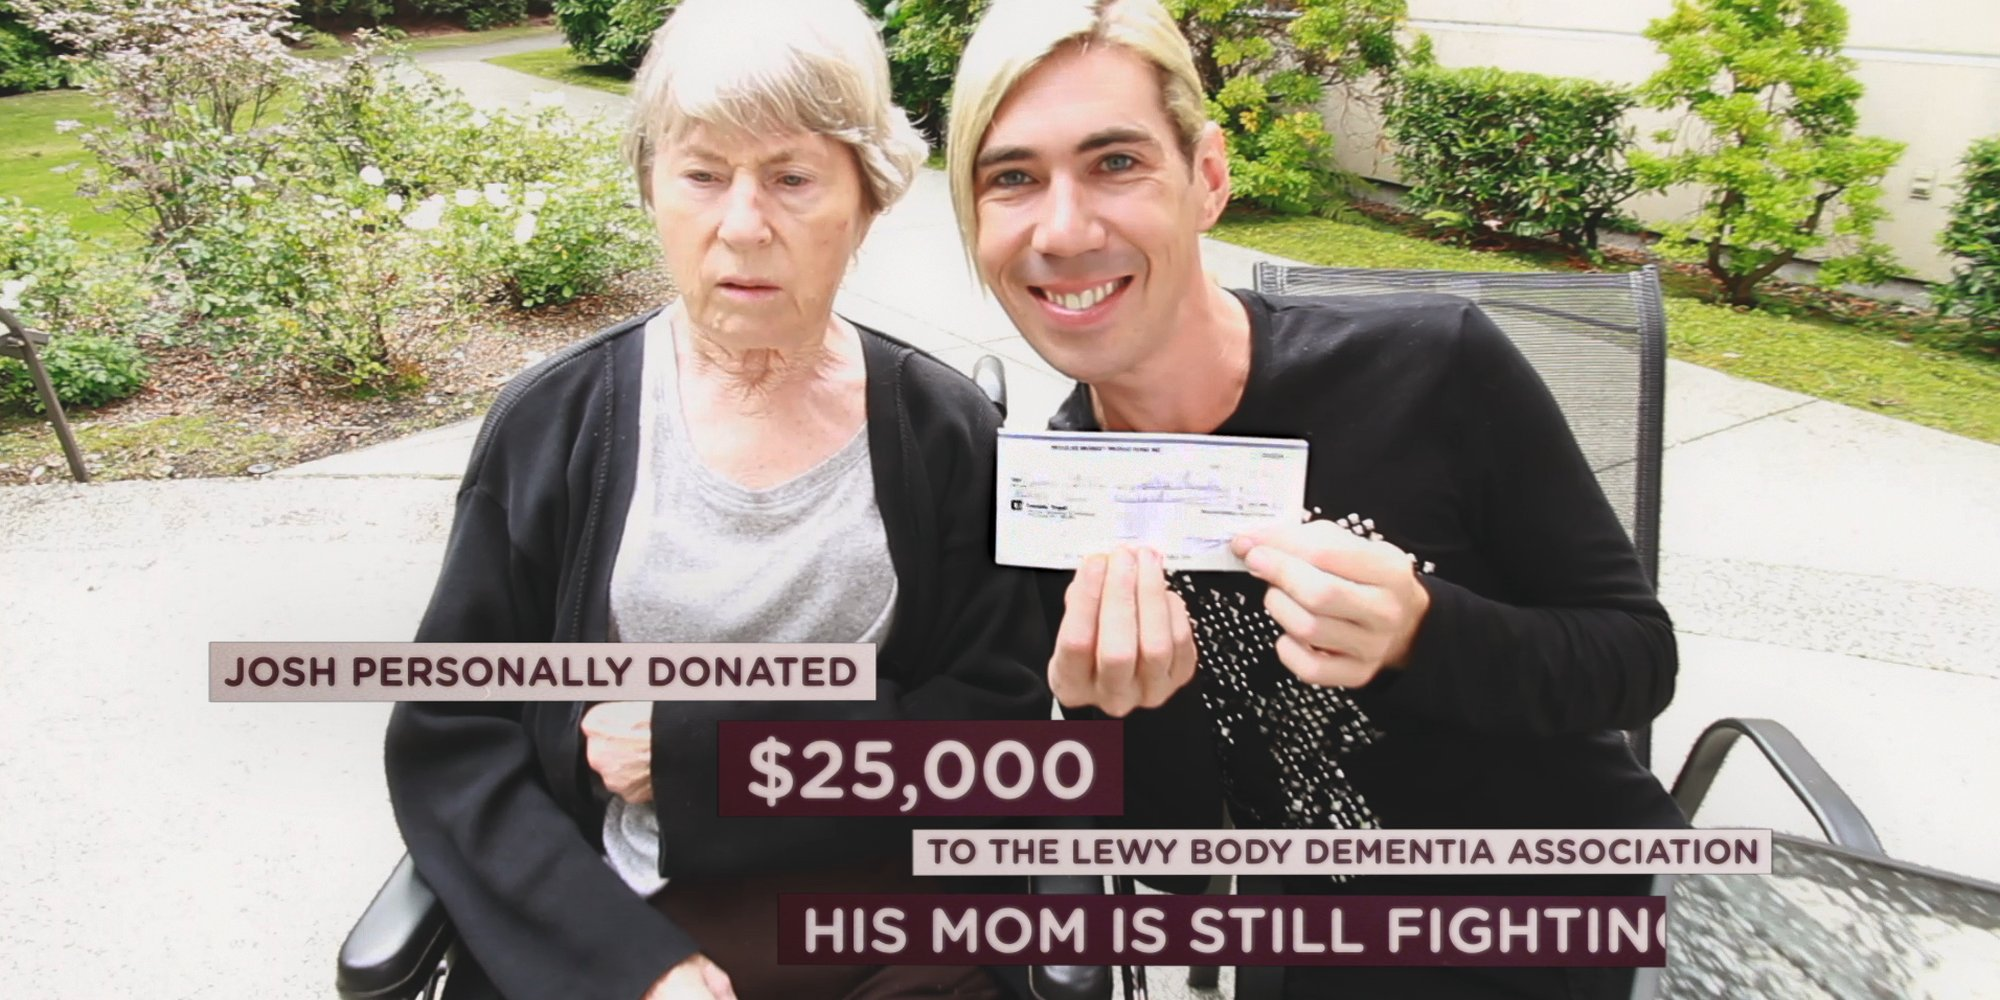 Josh personally donated 25,000 dollars to fight body dementia